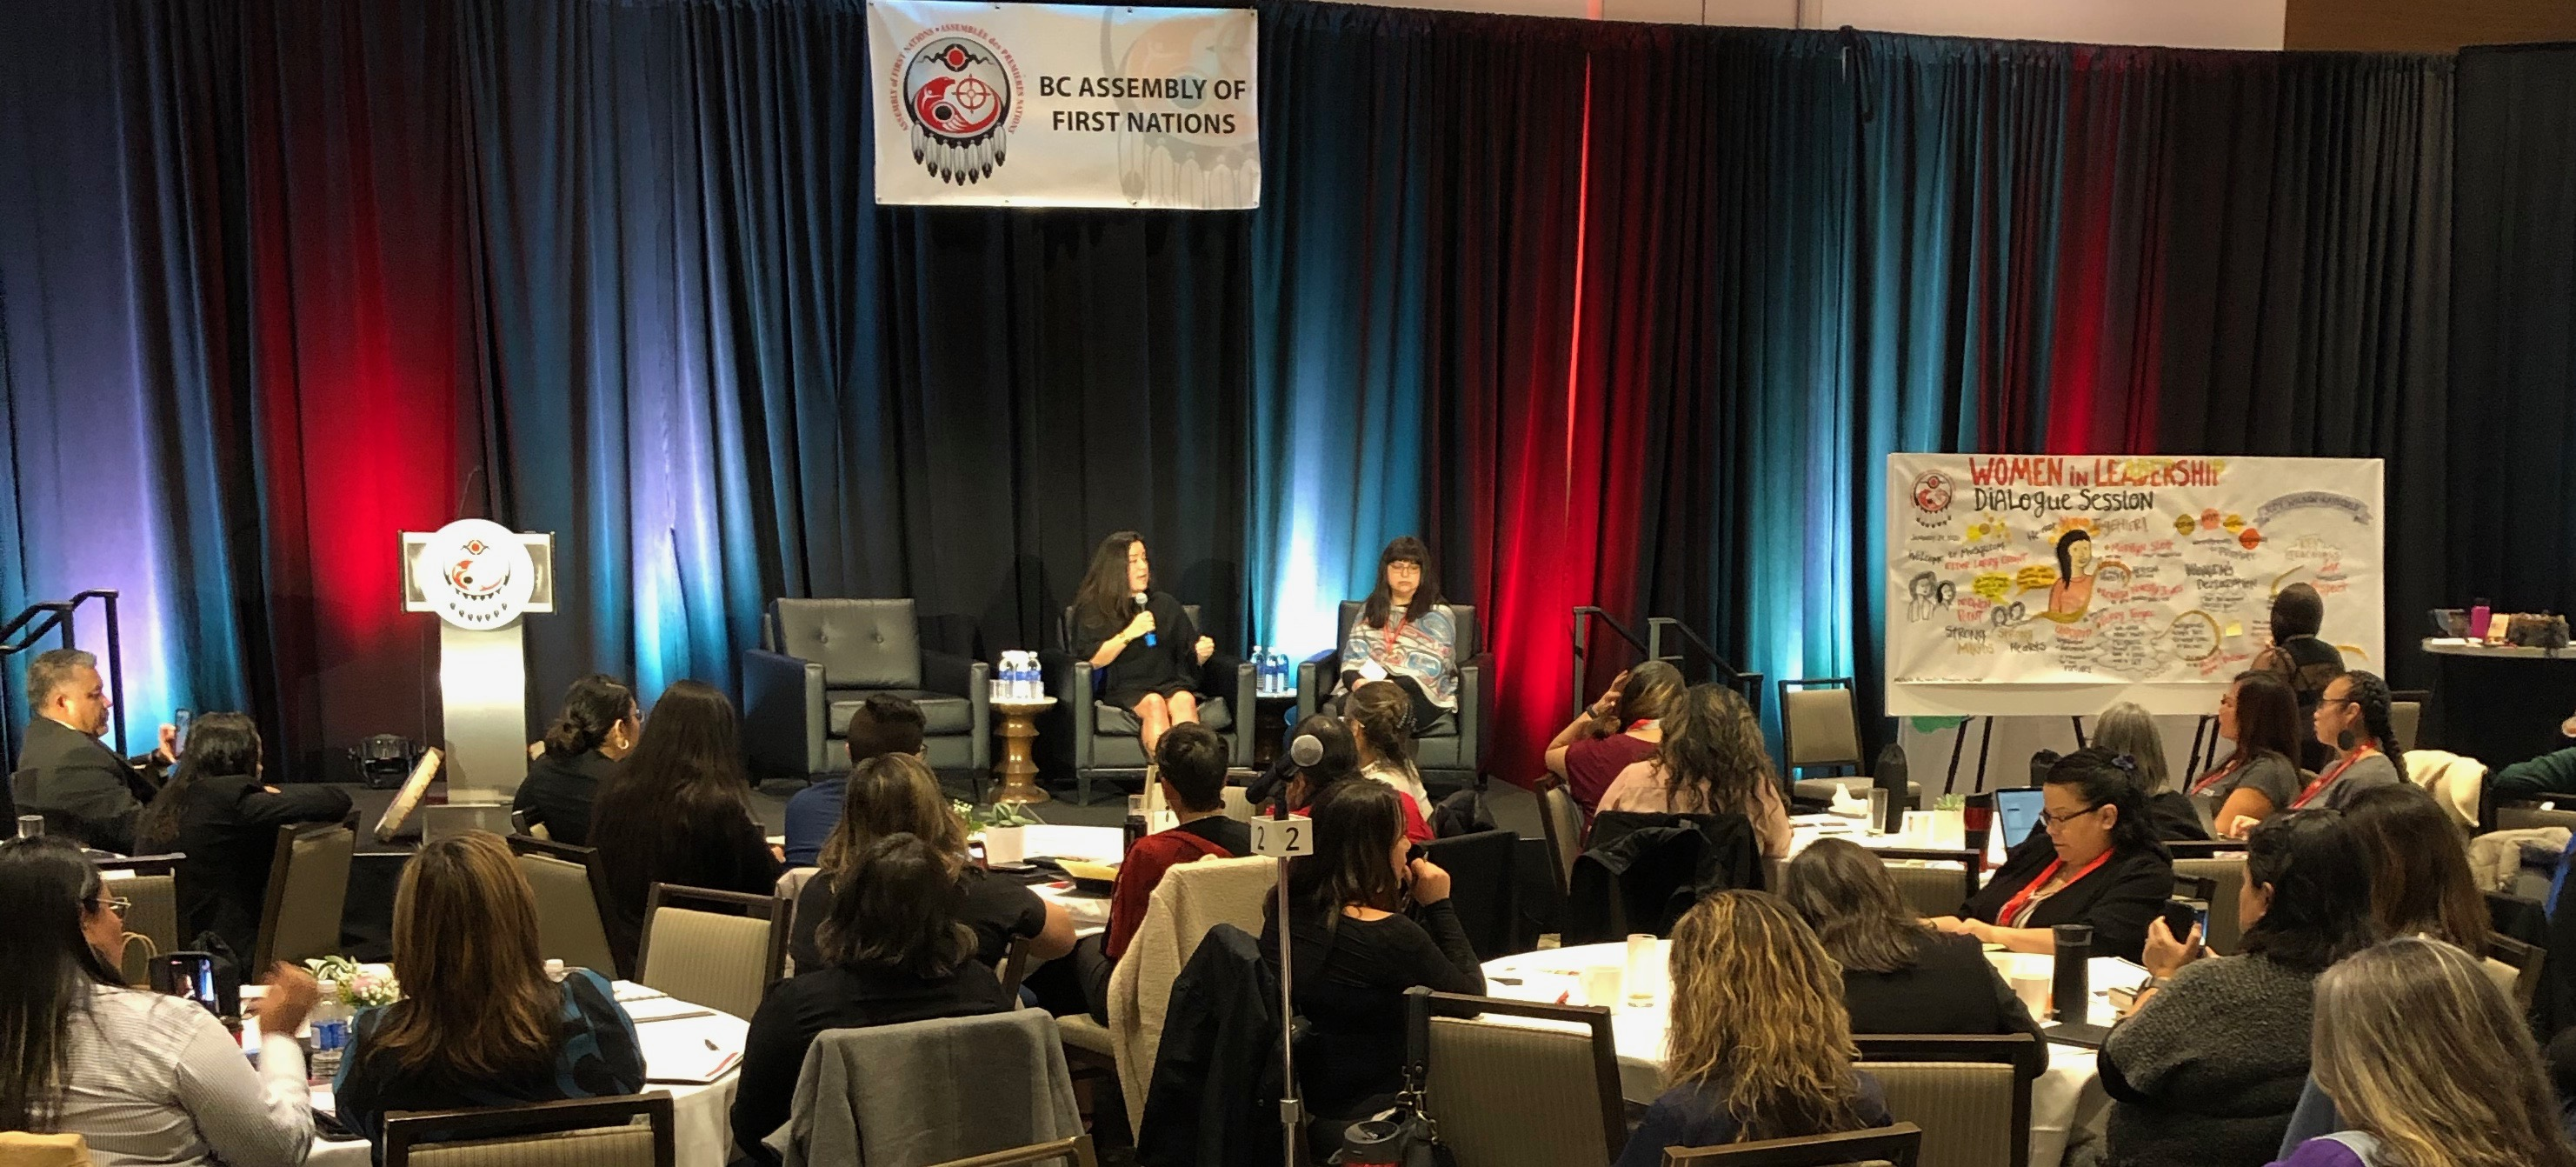 BCAFN Women in Leadership